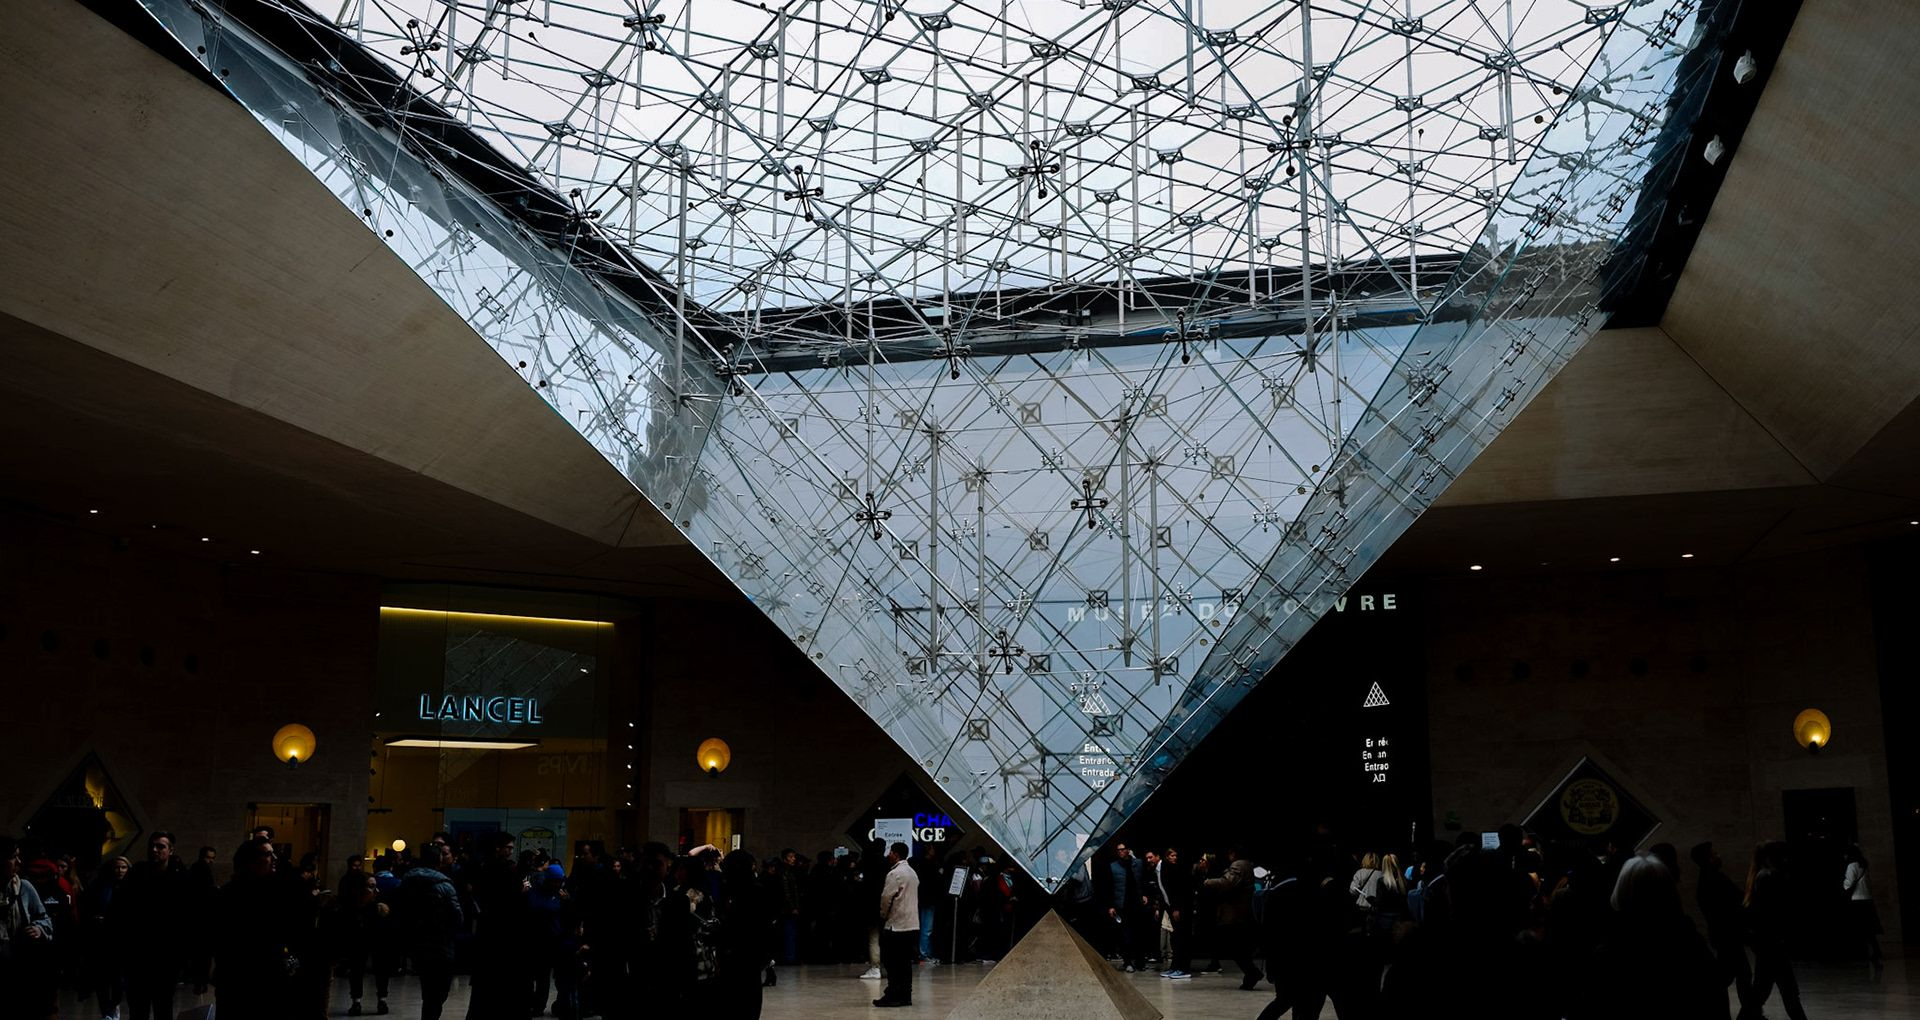 Louvre Museum entrance from below